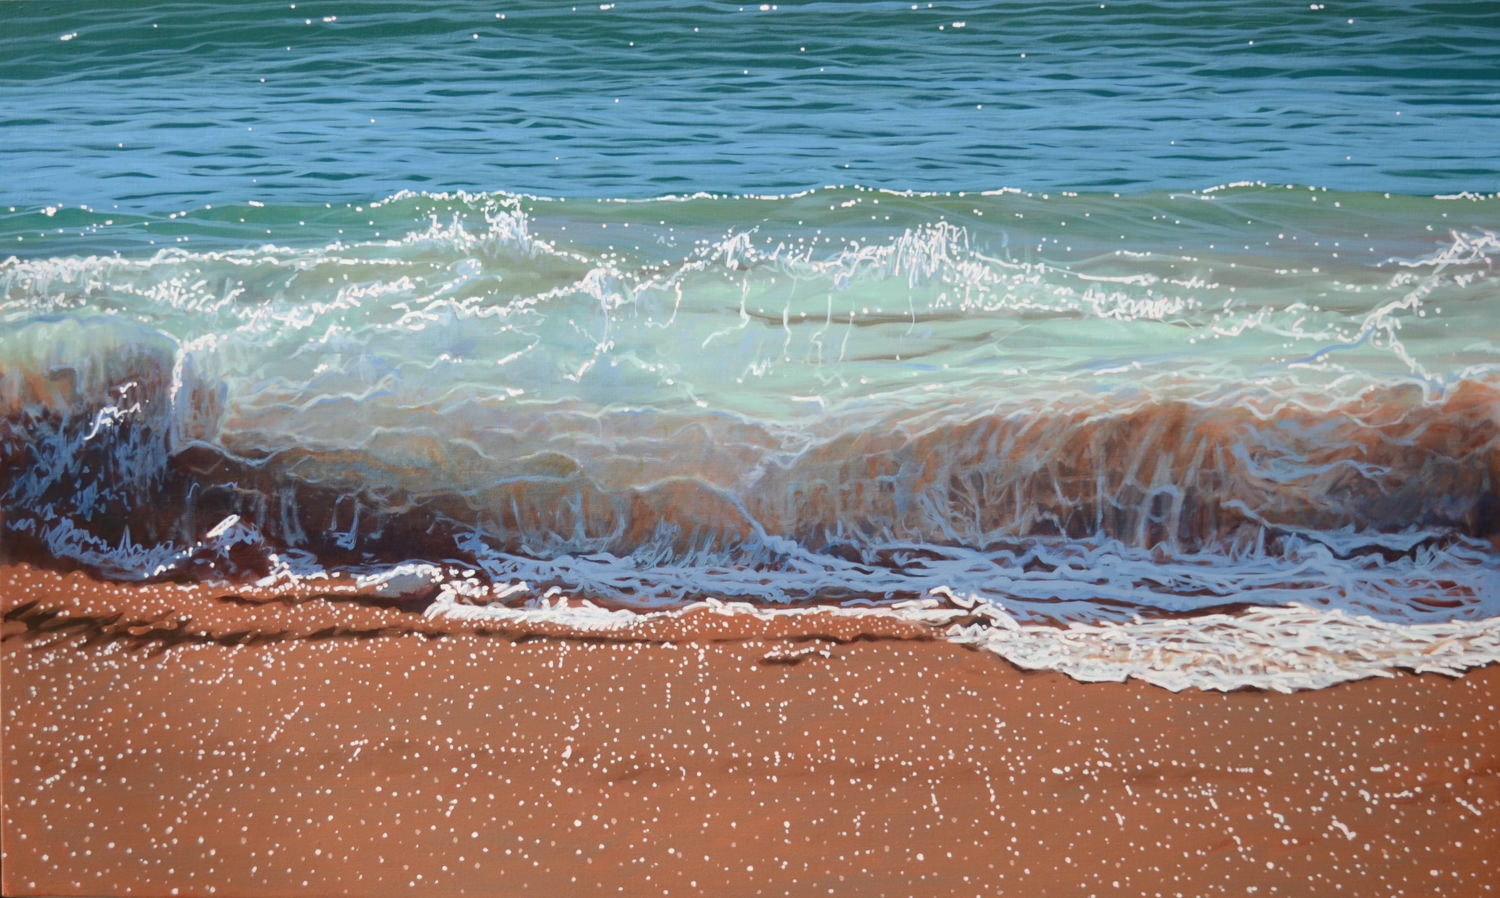 Paul Haggith Shorebreak No. 11 93cm x 154cm